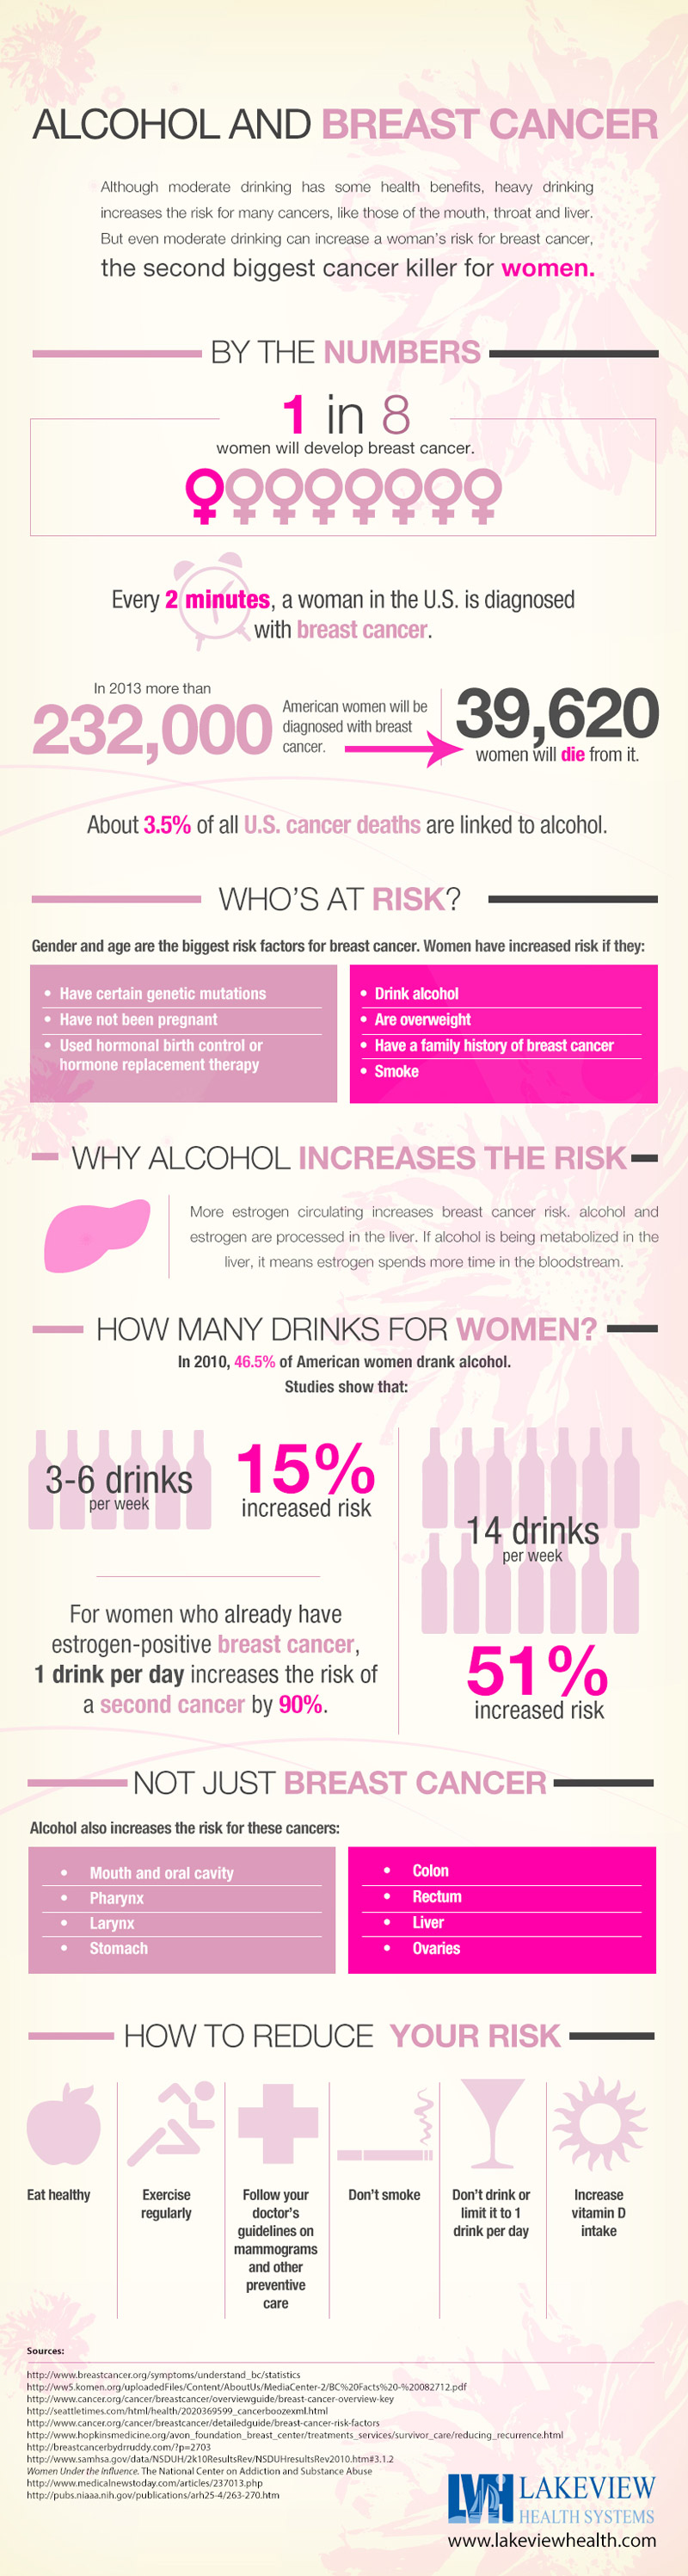 alcohol-breast-cancer